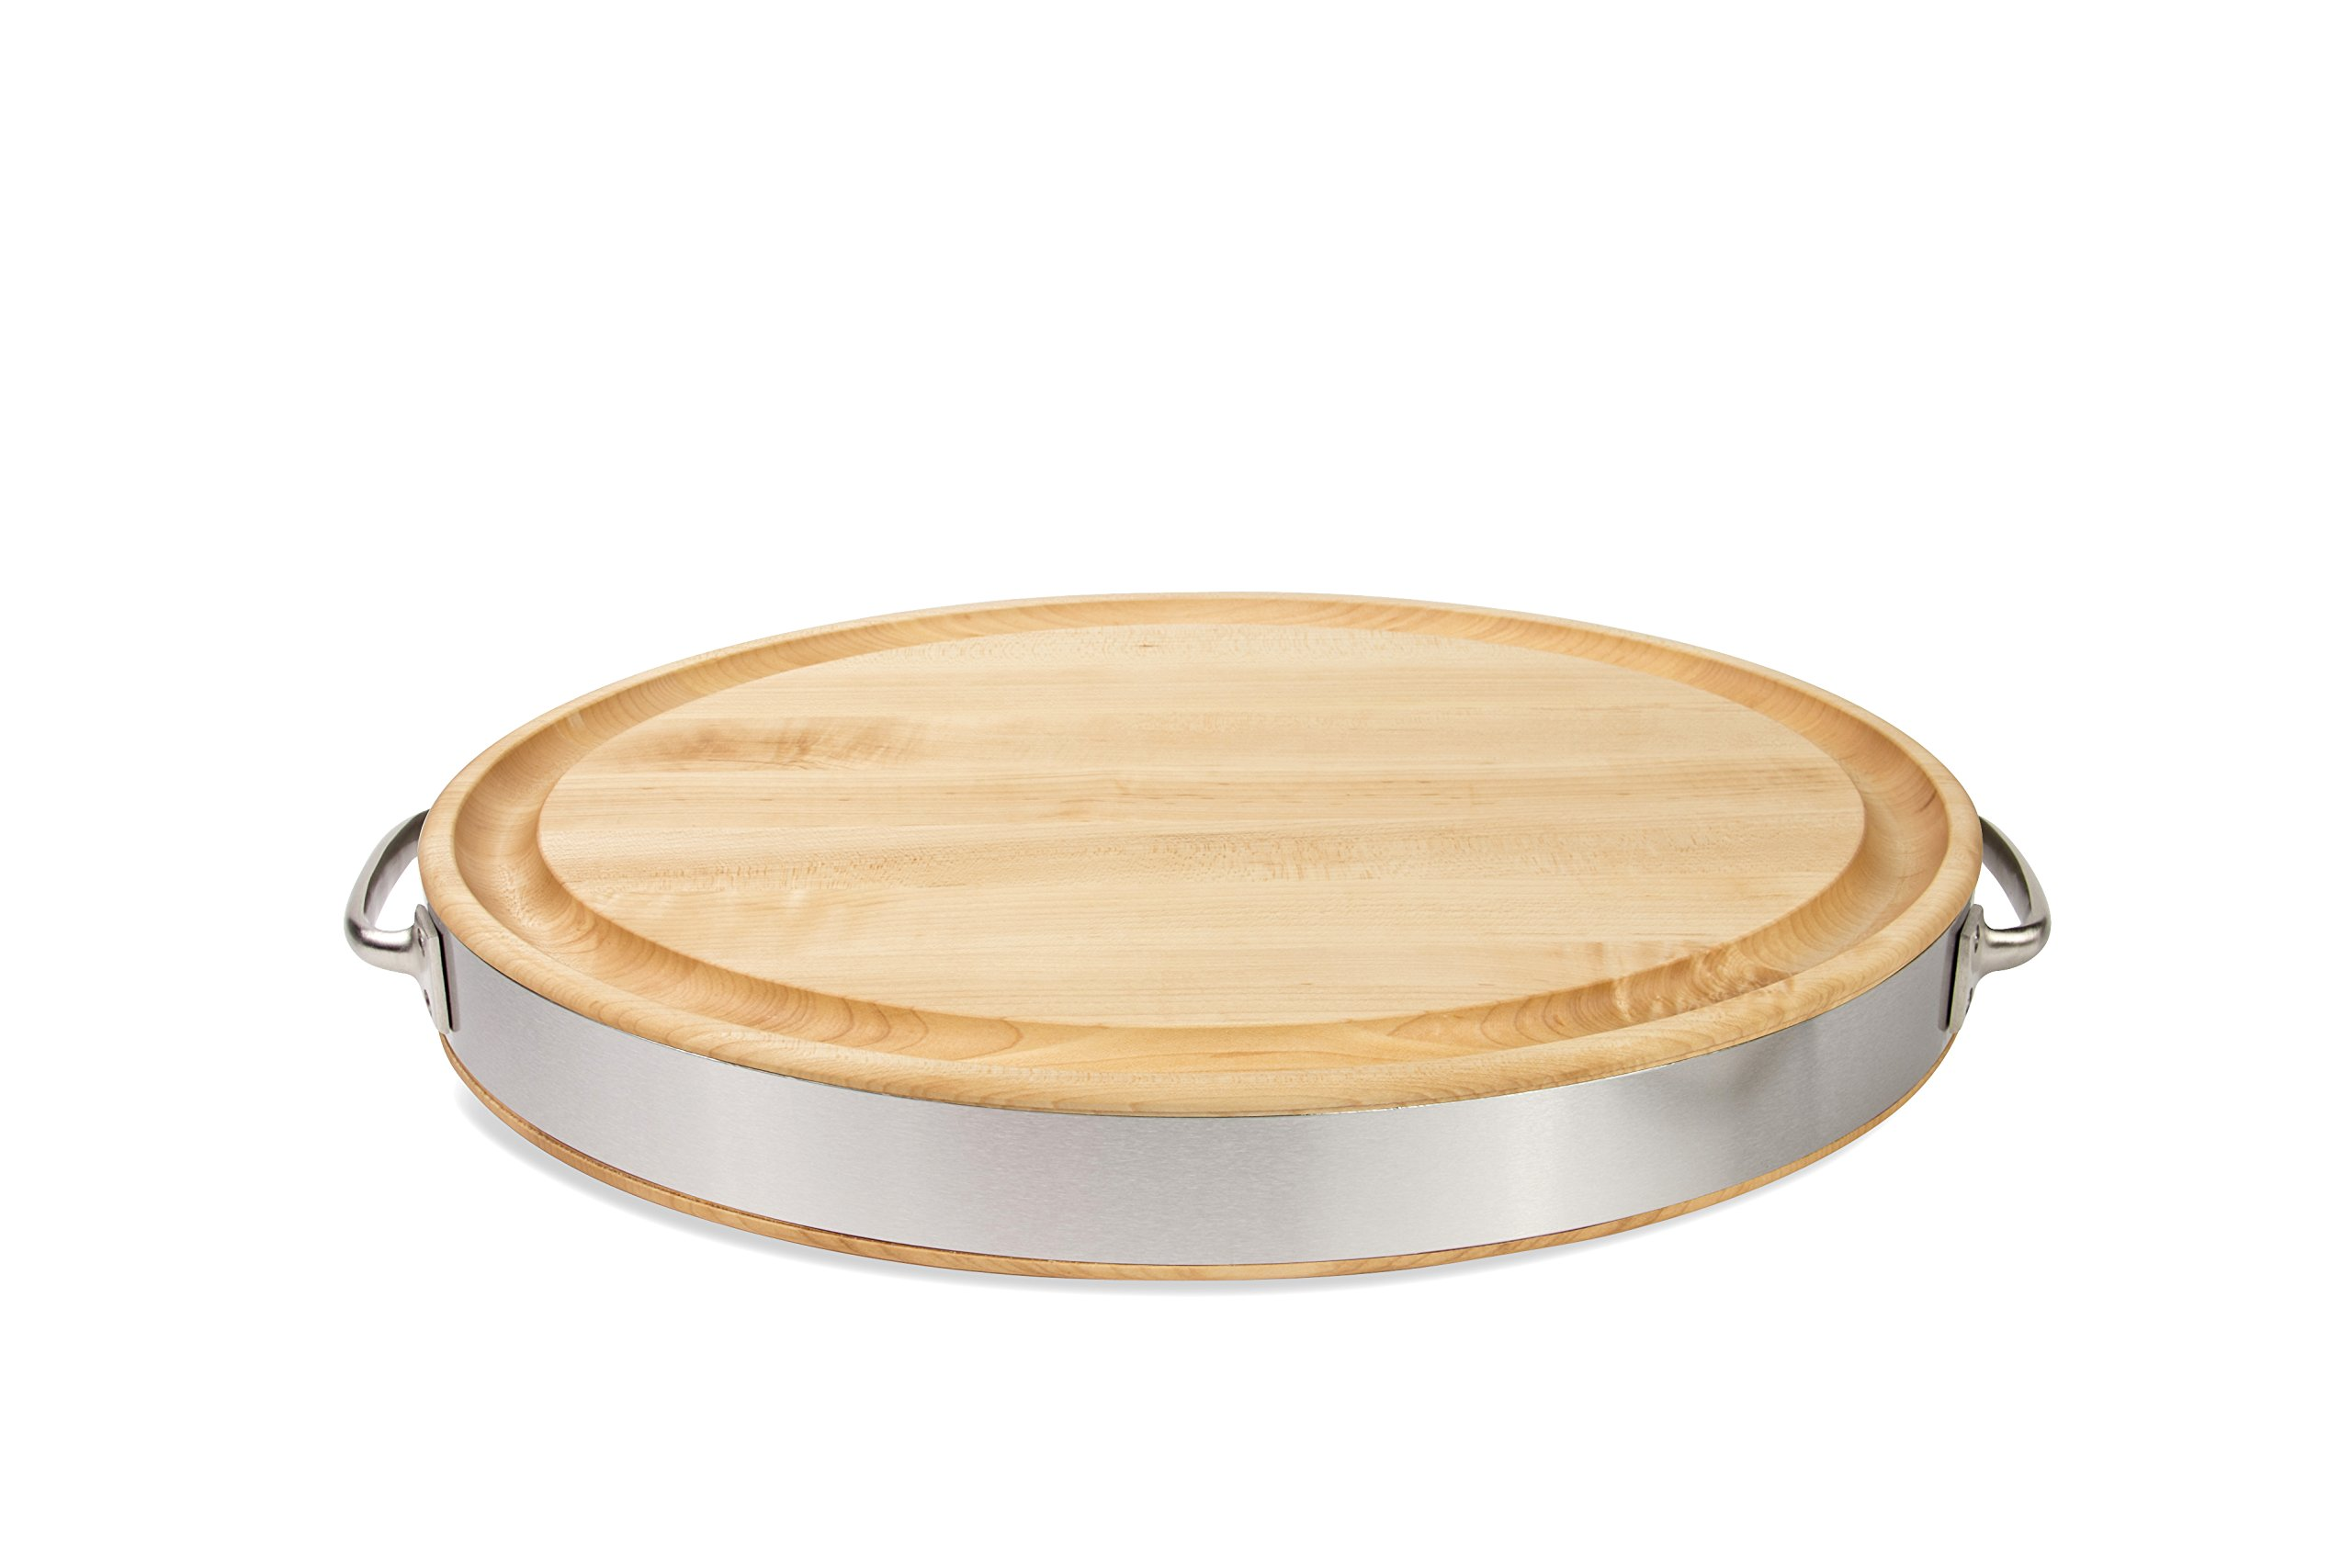 John Boos Maple Wood Edge Grain Reversible Oval Cutting Board with Stainless Steel Handles and Band, 20 by 15 by 2.5'', Maple